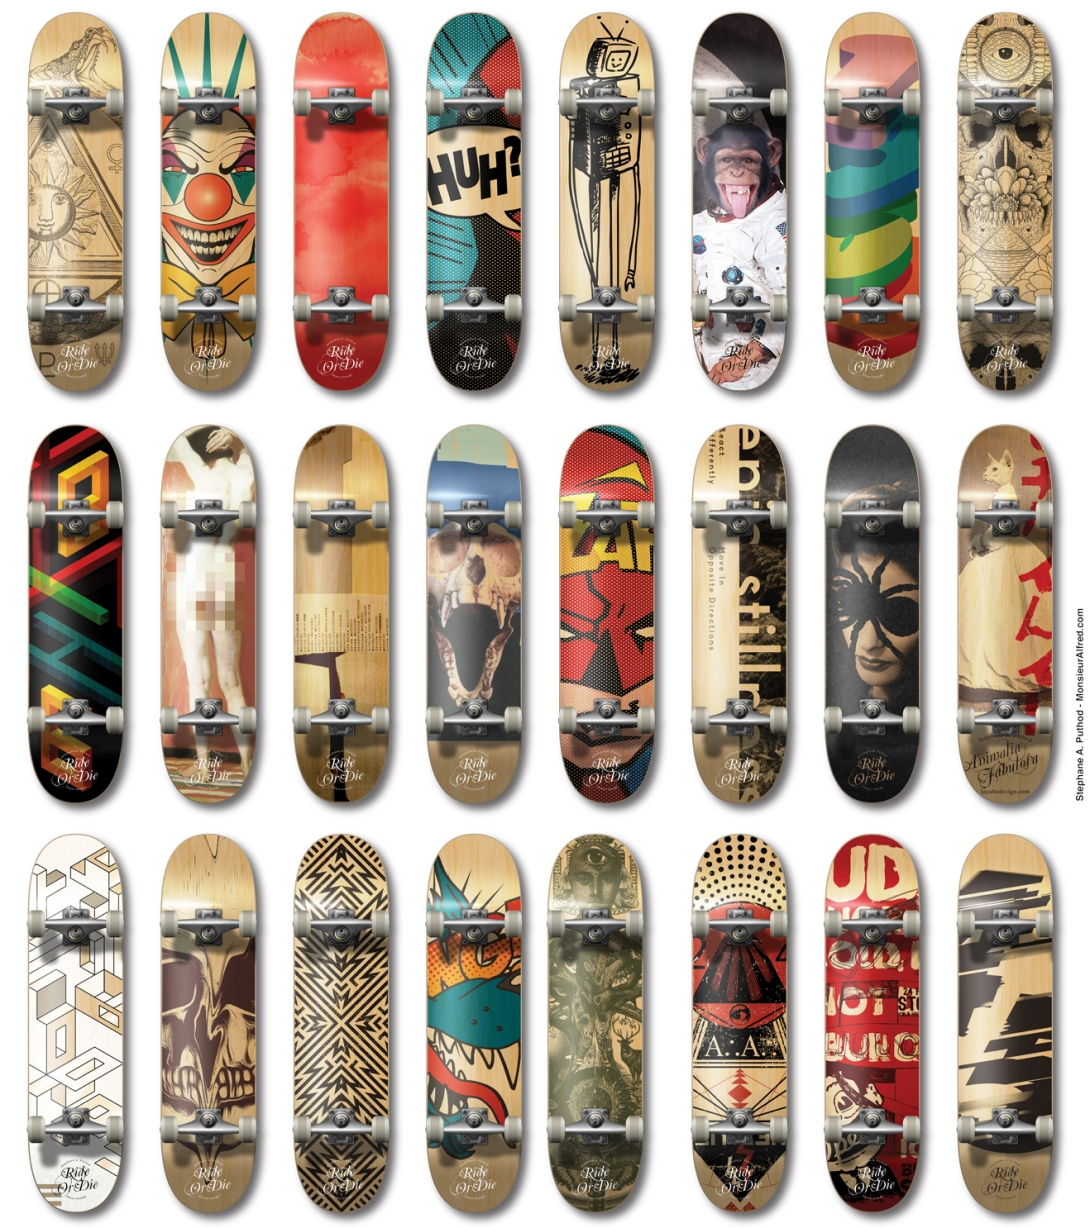 SkateCollection